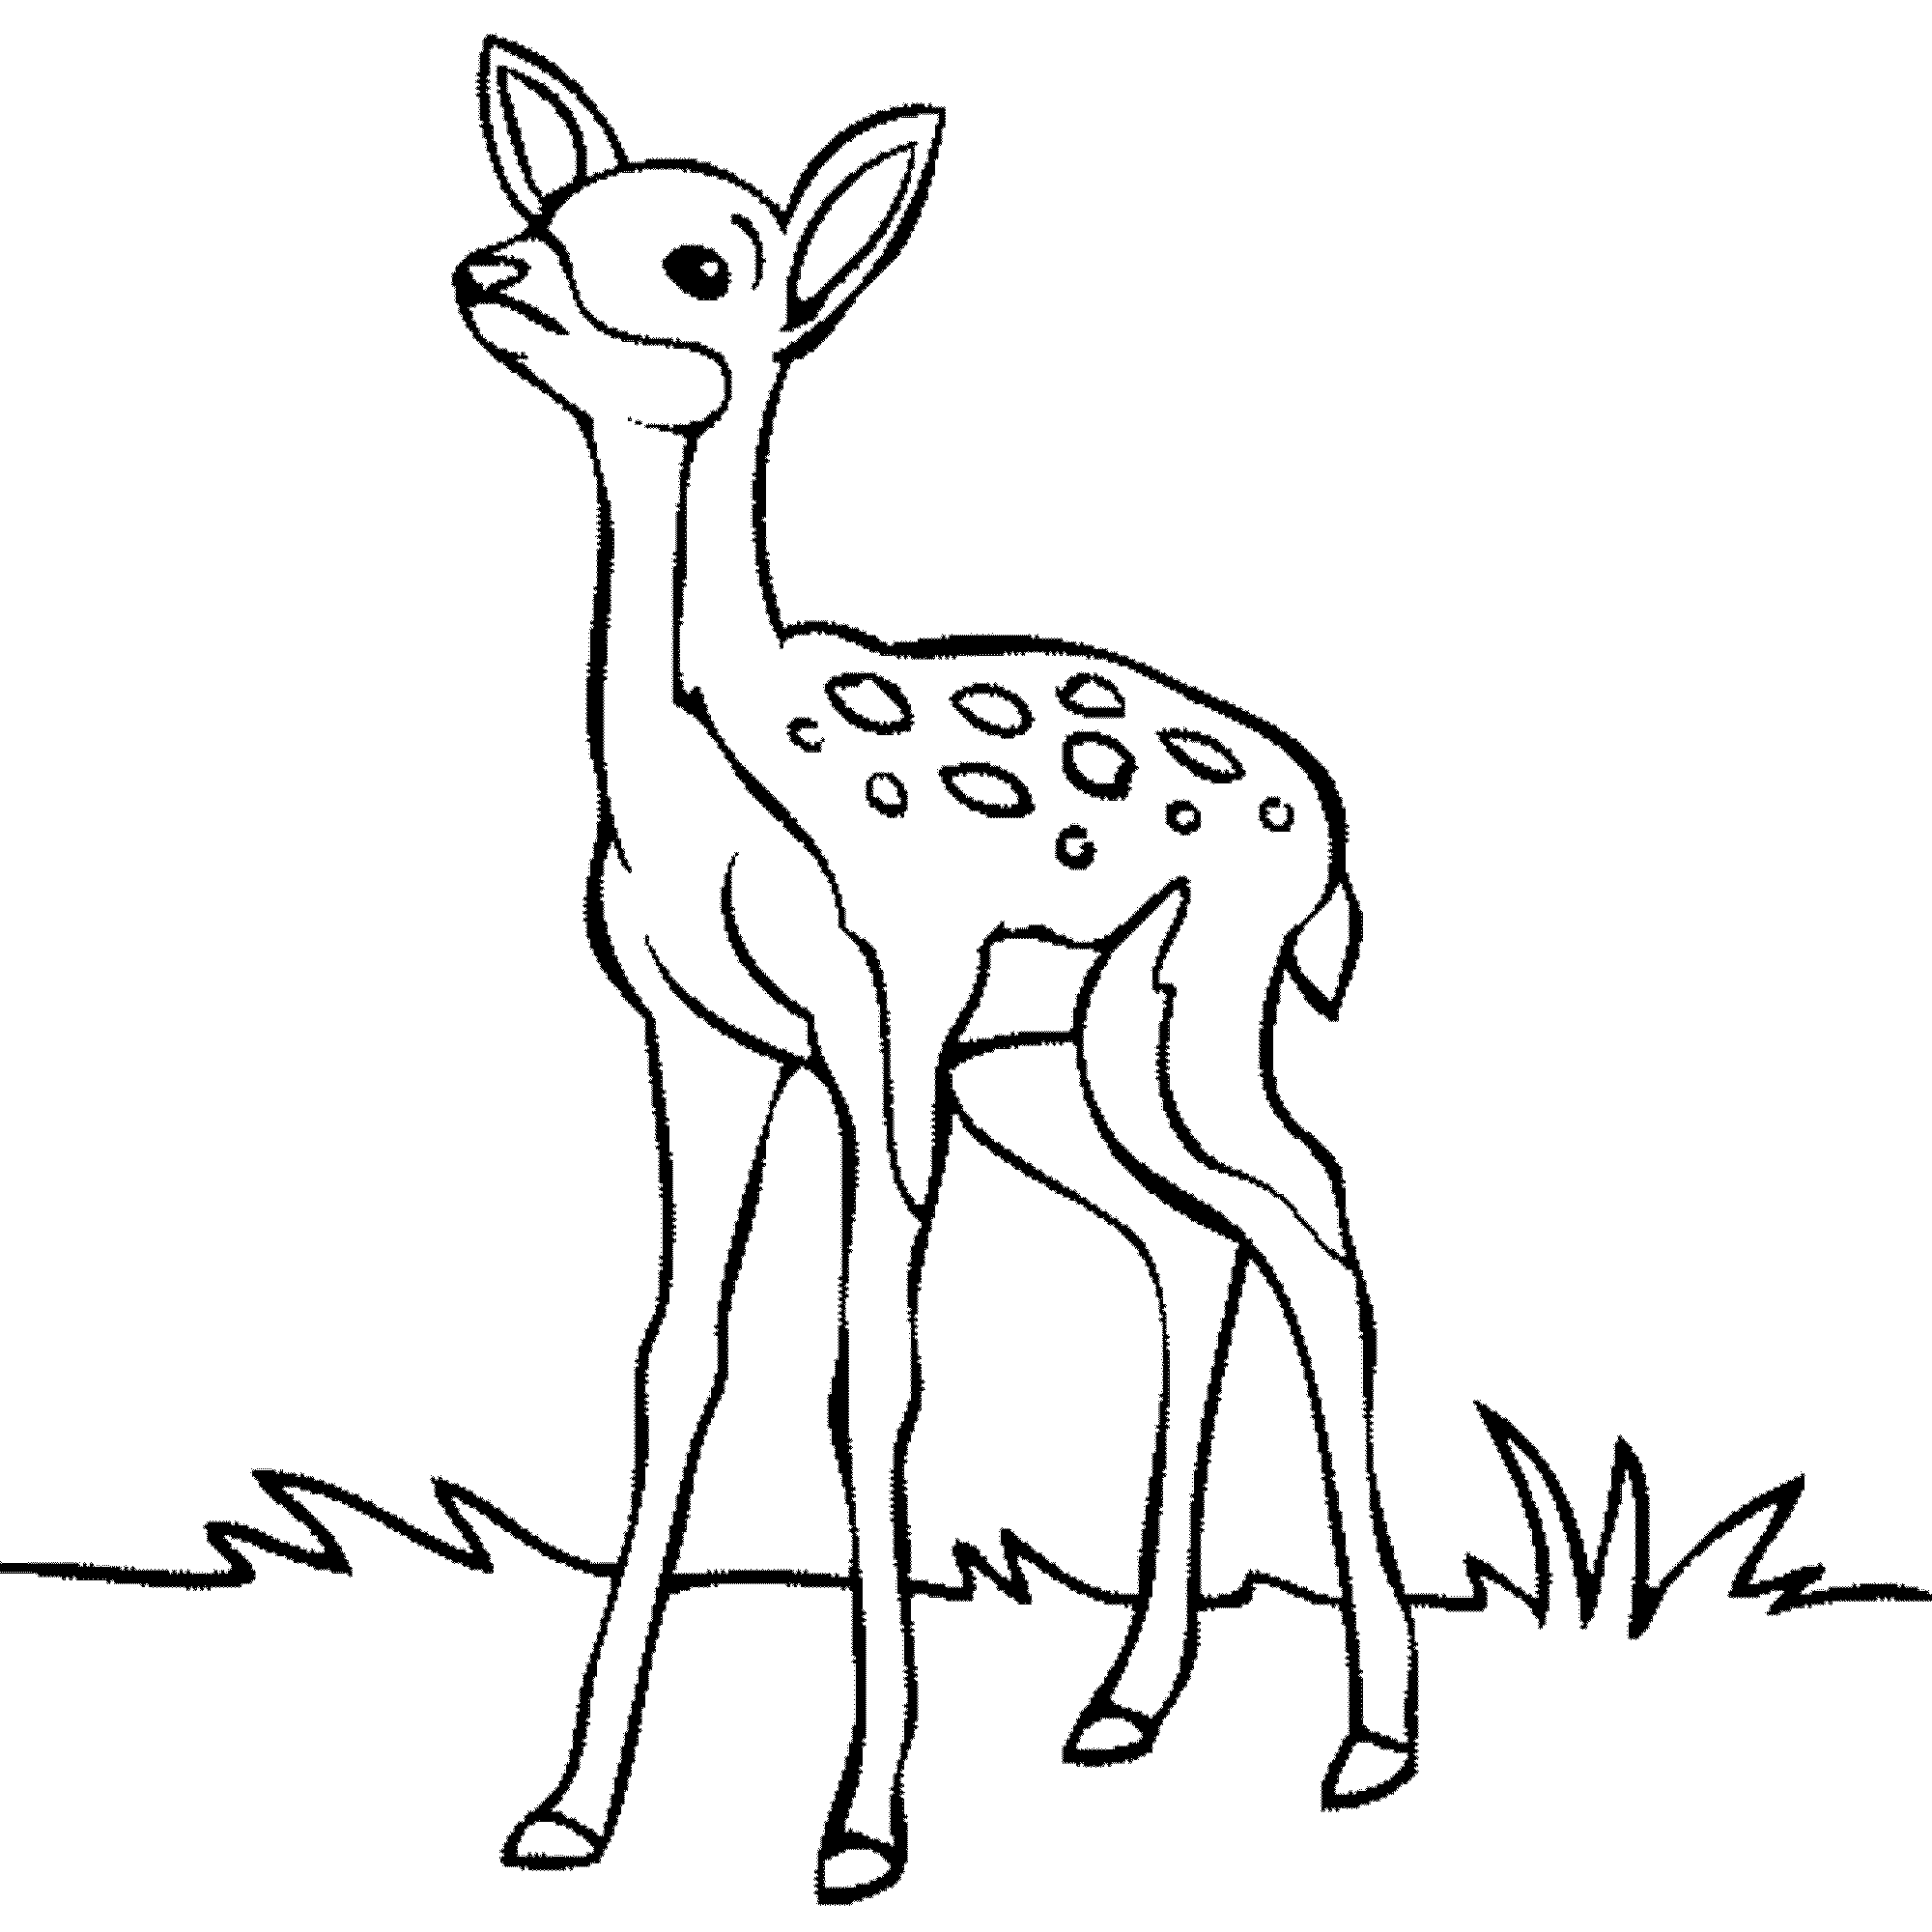 check - Baby Forest Animals Coloring Pages